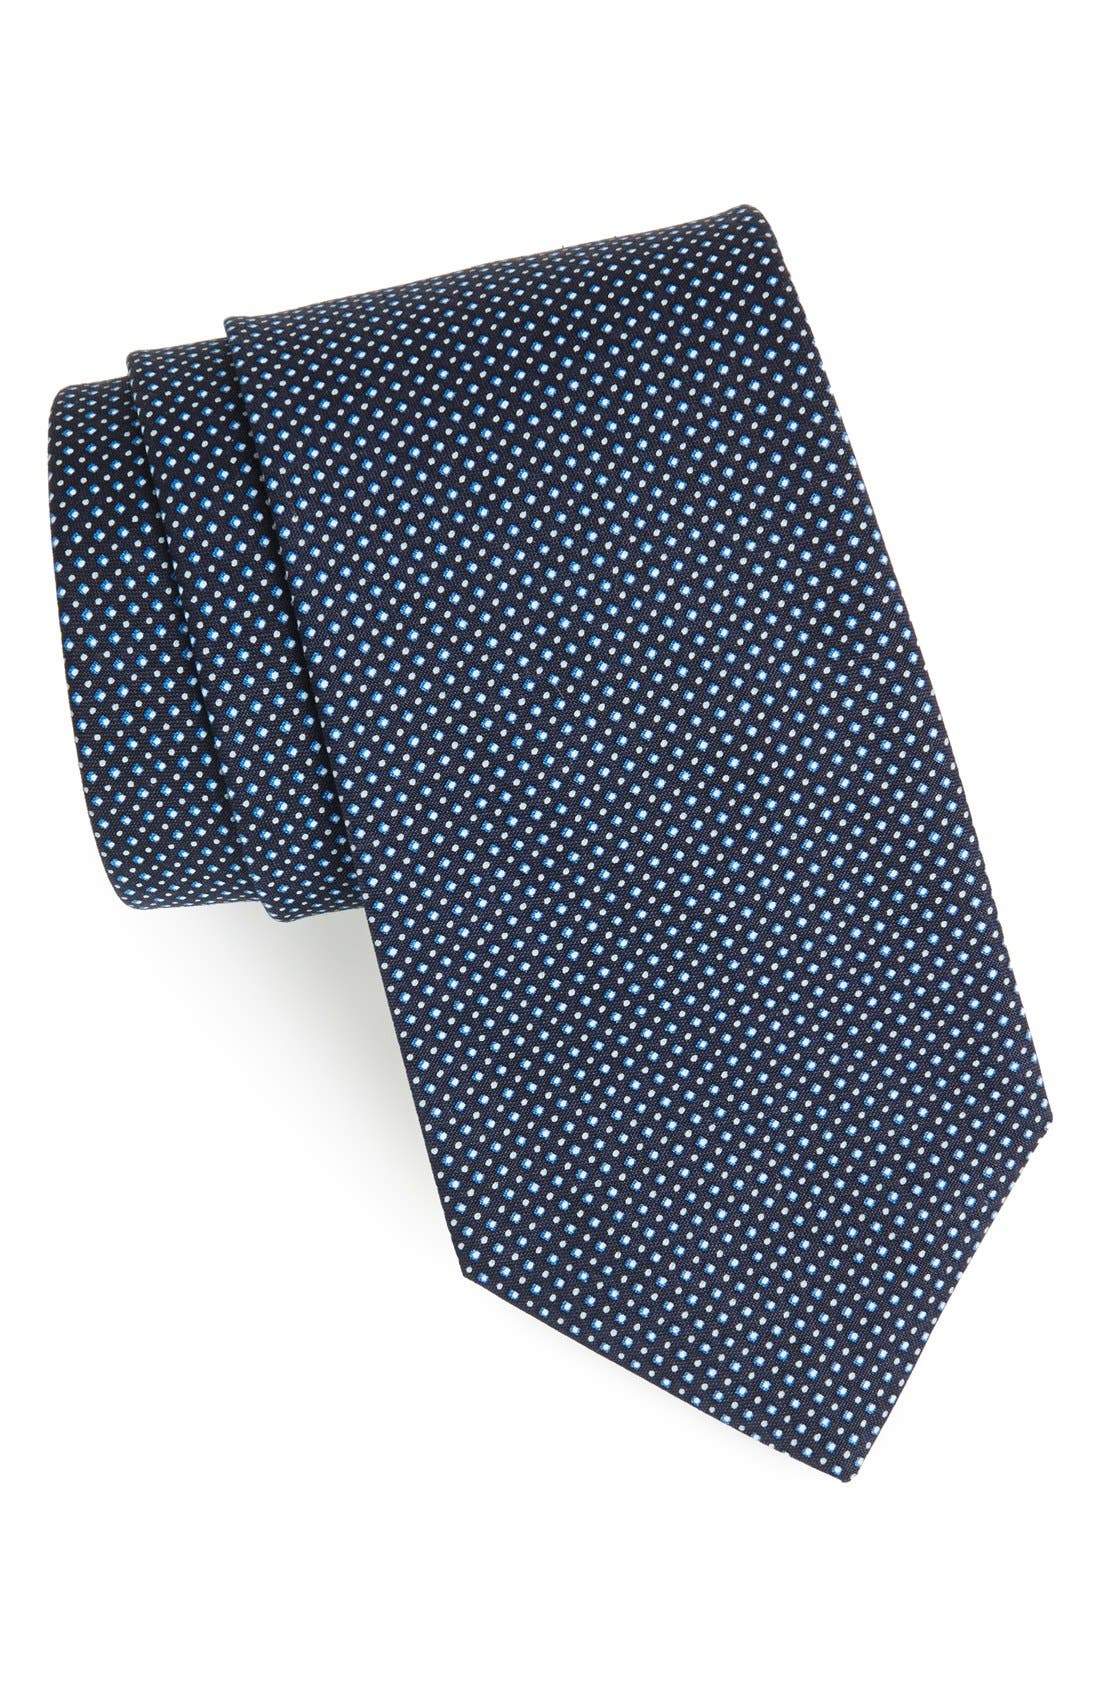 Alternate Image 1 Selected - HUGO BOSS SOLID TIE